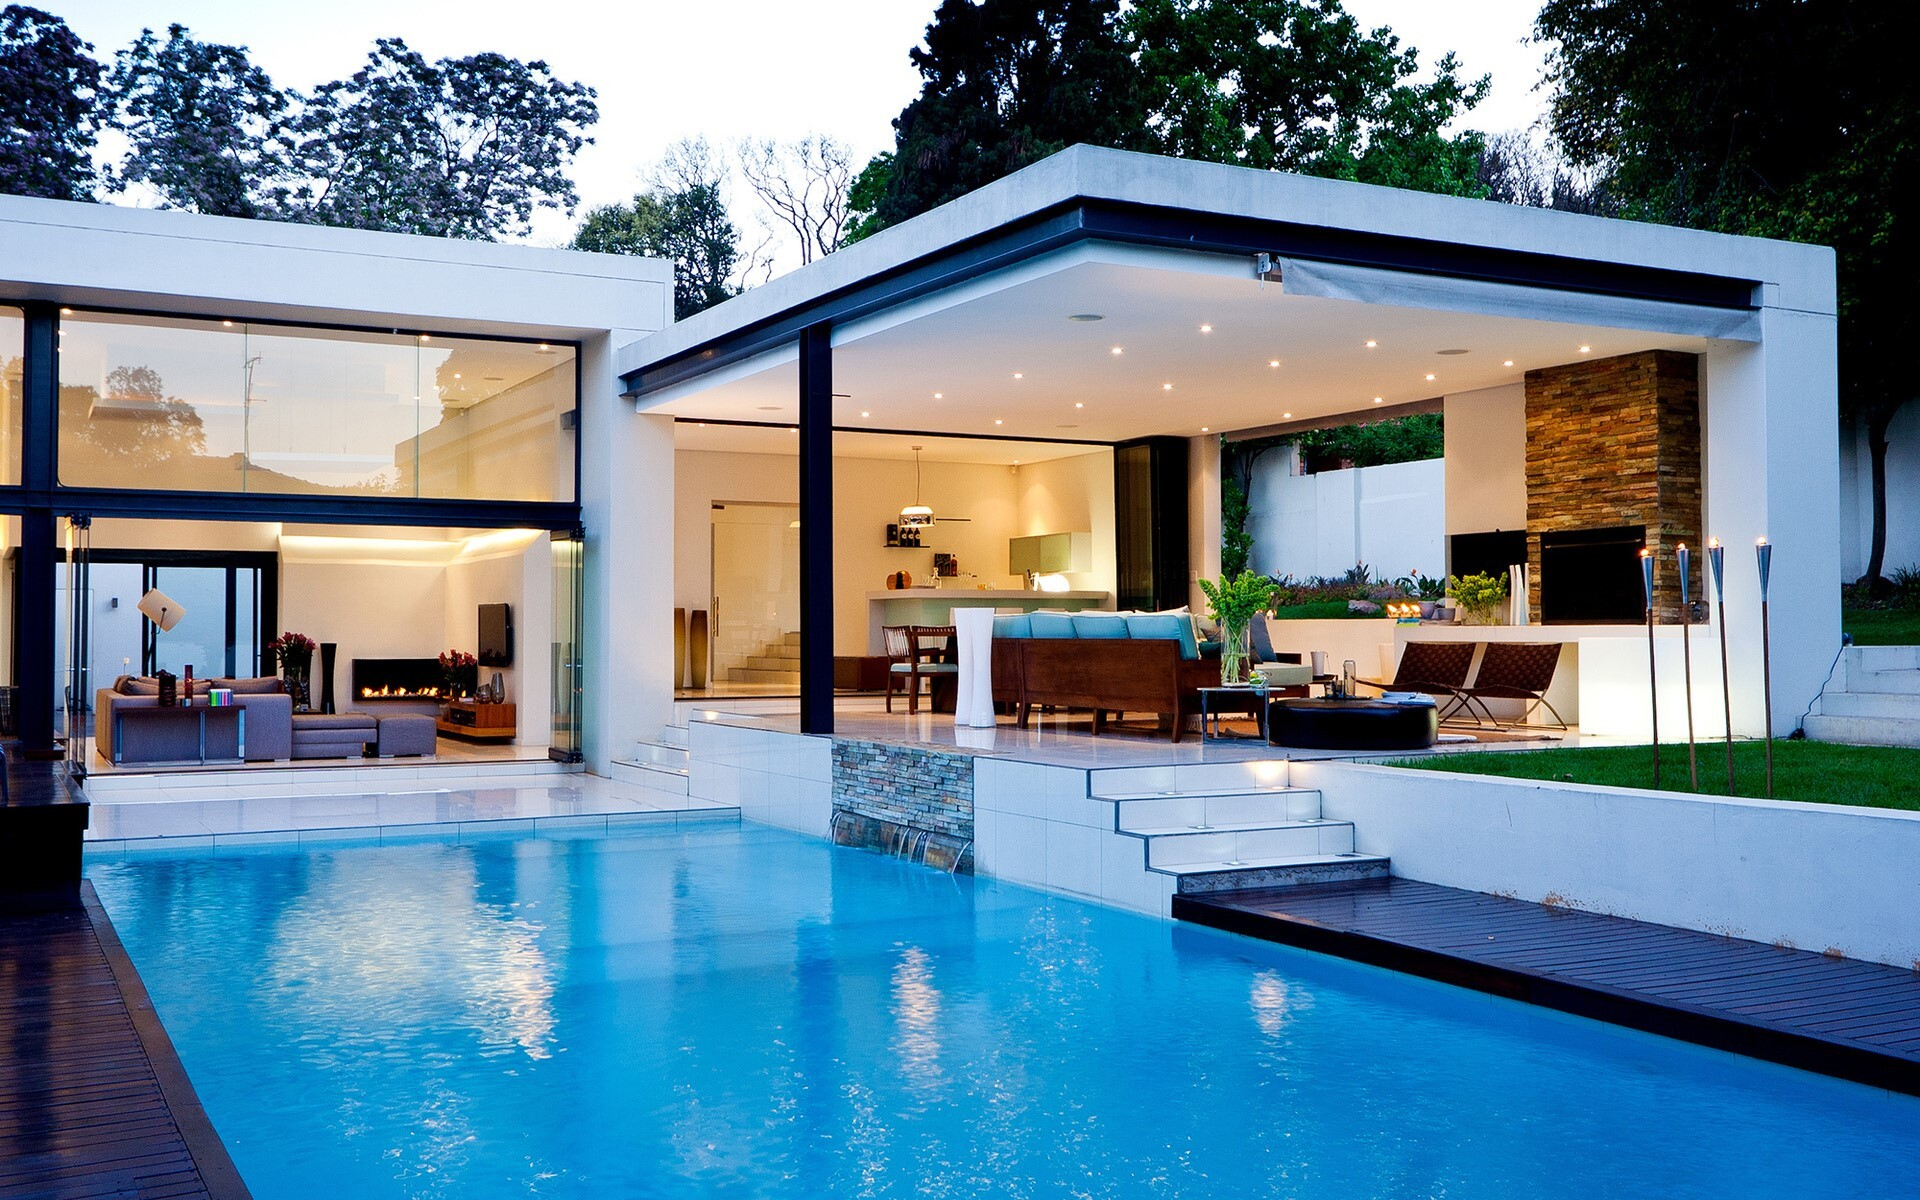 Beautiful Luxury House With Swiming Pool Wallpapers For Desktop Hd